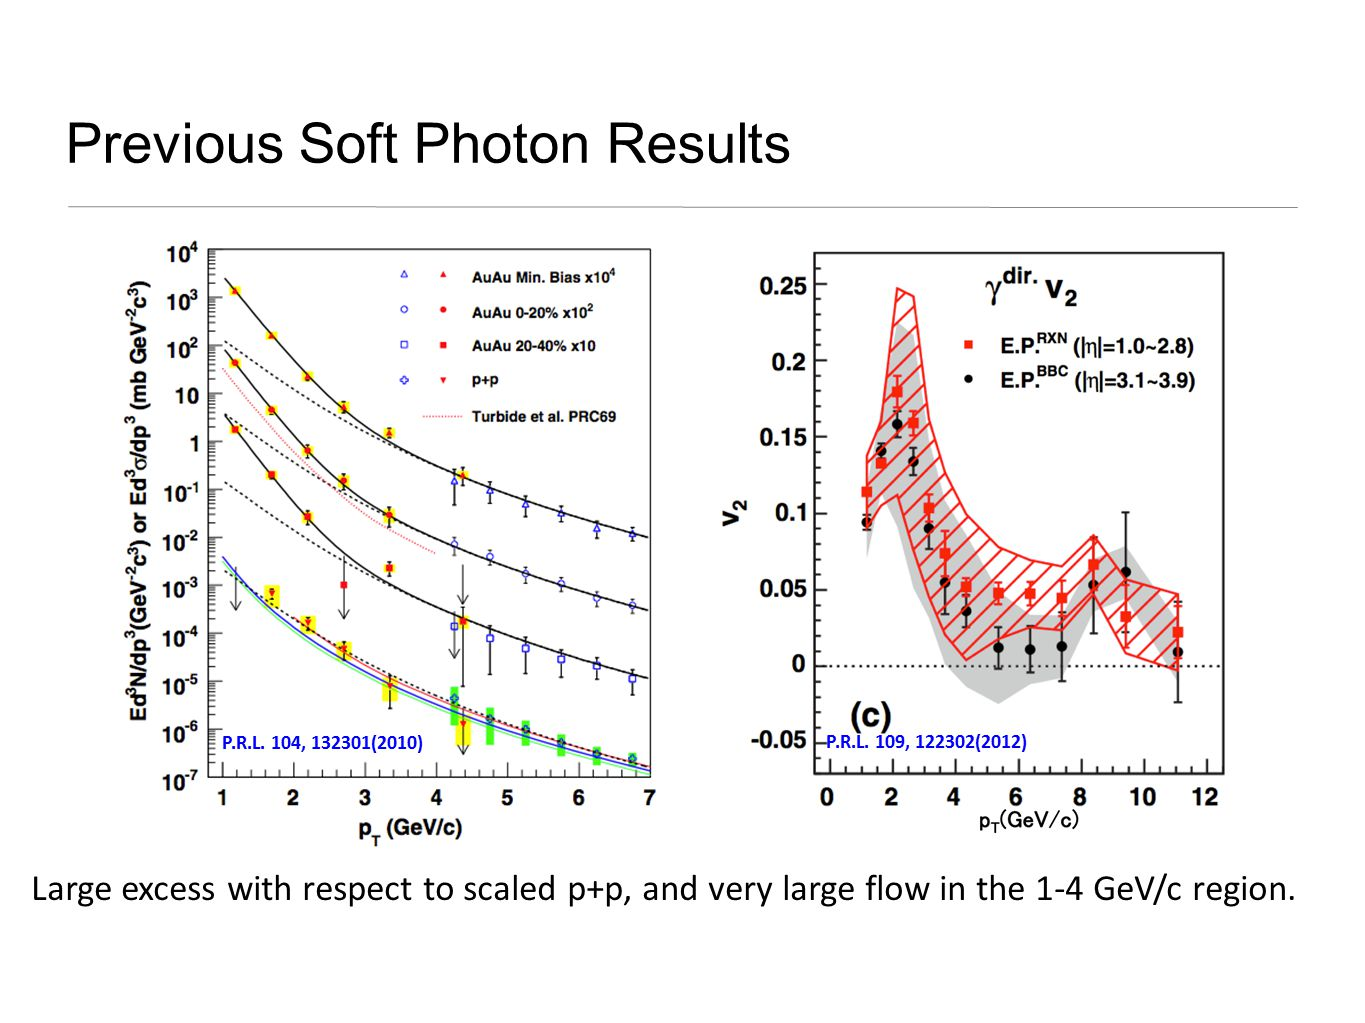 Previous Soft Photon Results Large excess with respect to scaled p+p, and very large flow in the 1-4 GeV/c region.